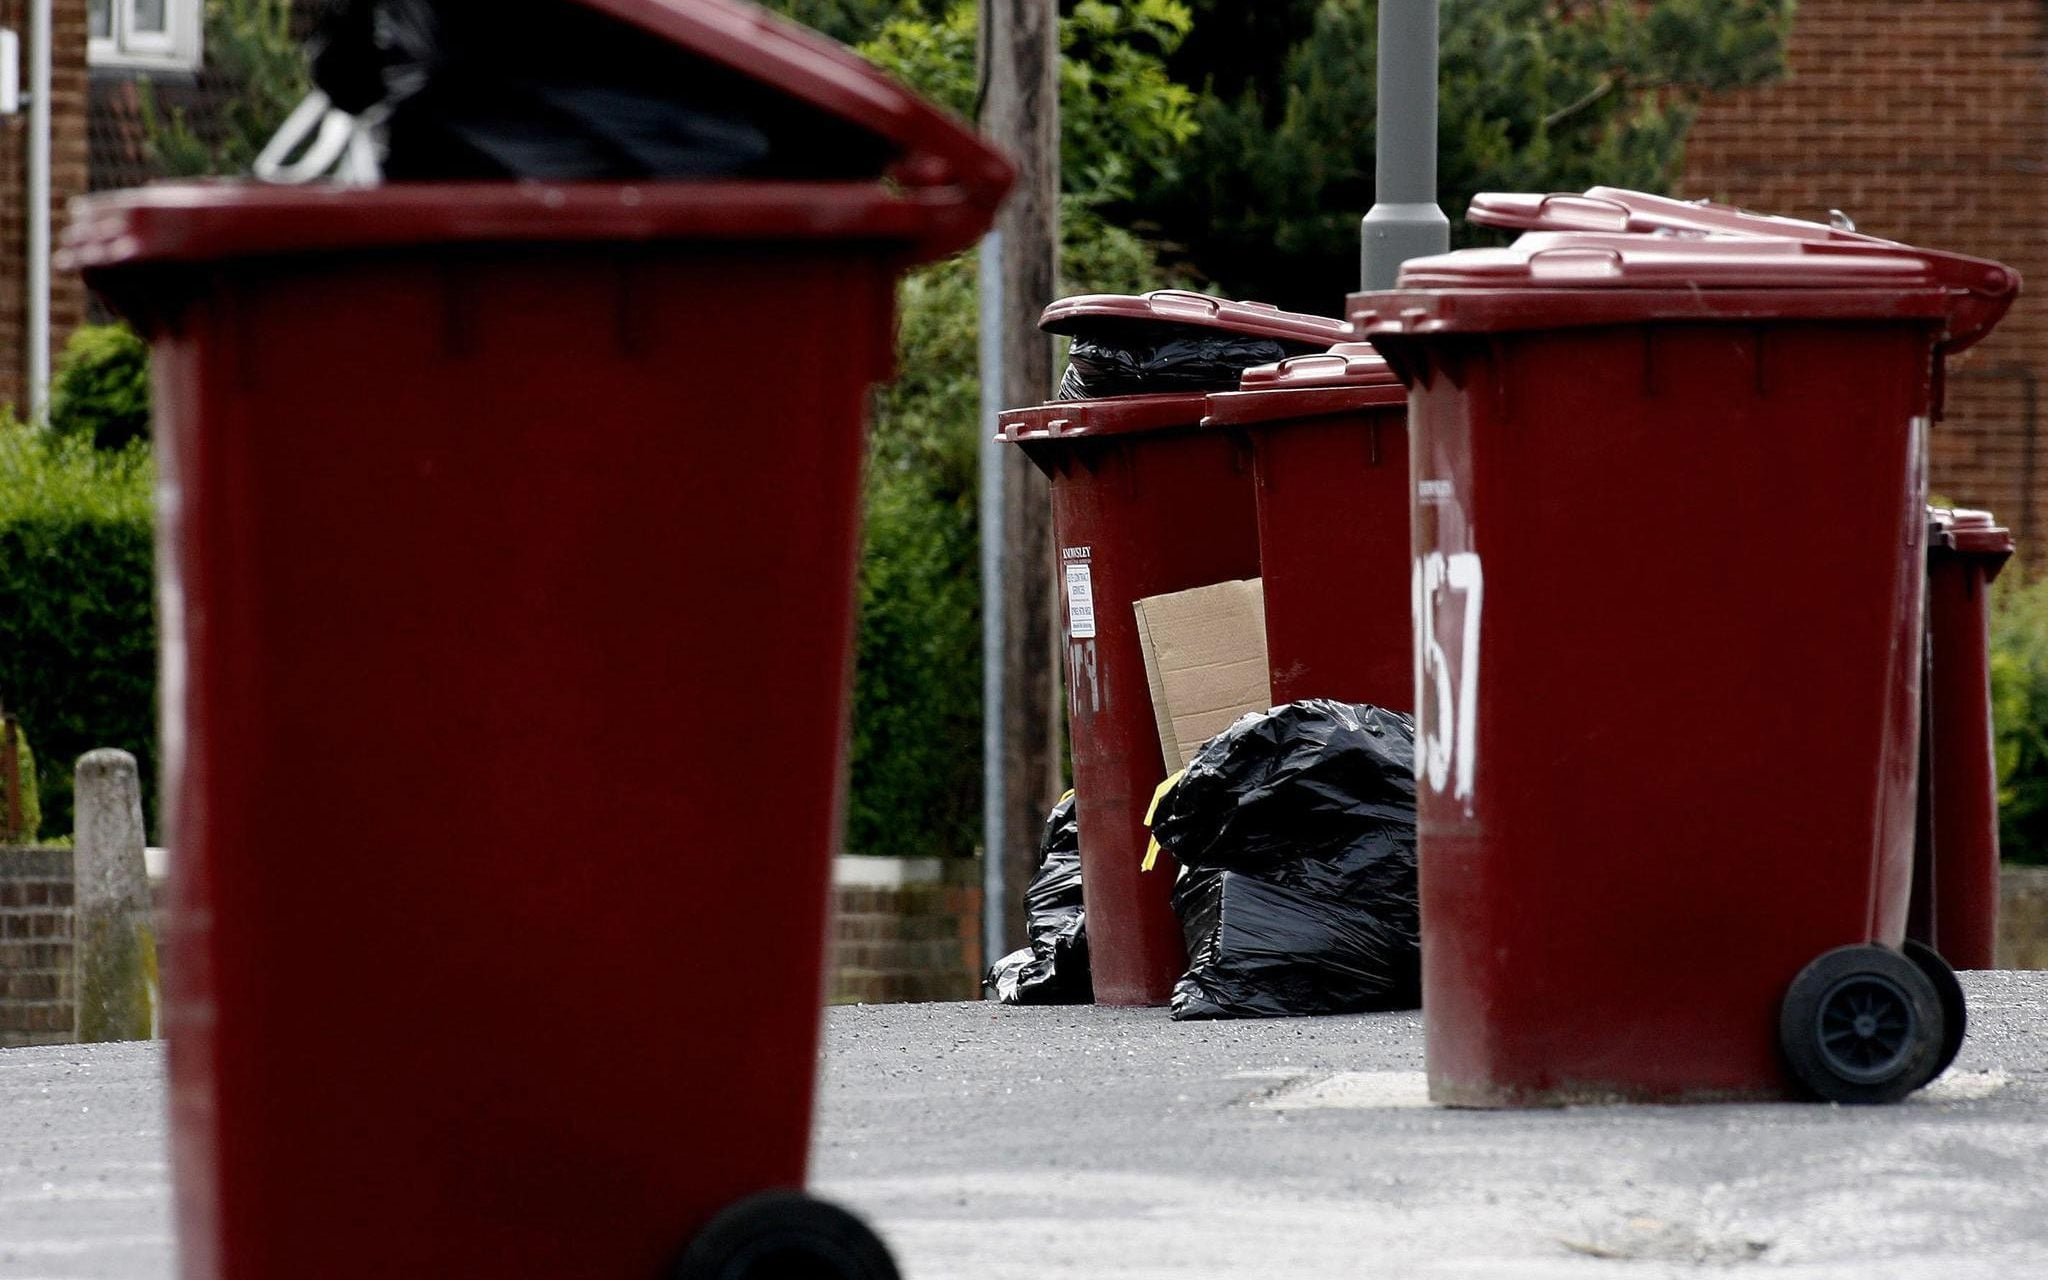 Recycling is too complicated and polluters should pay for waste instead of taxpayers, councils say